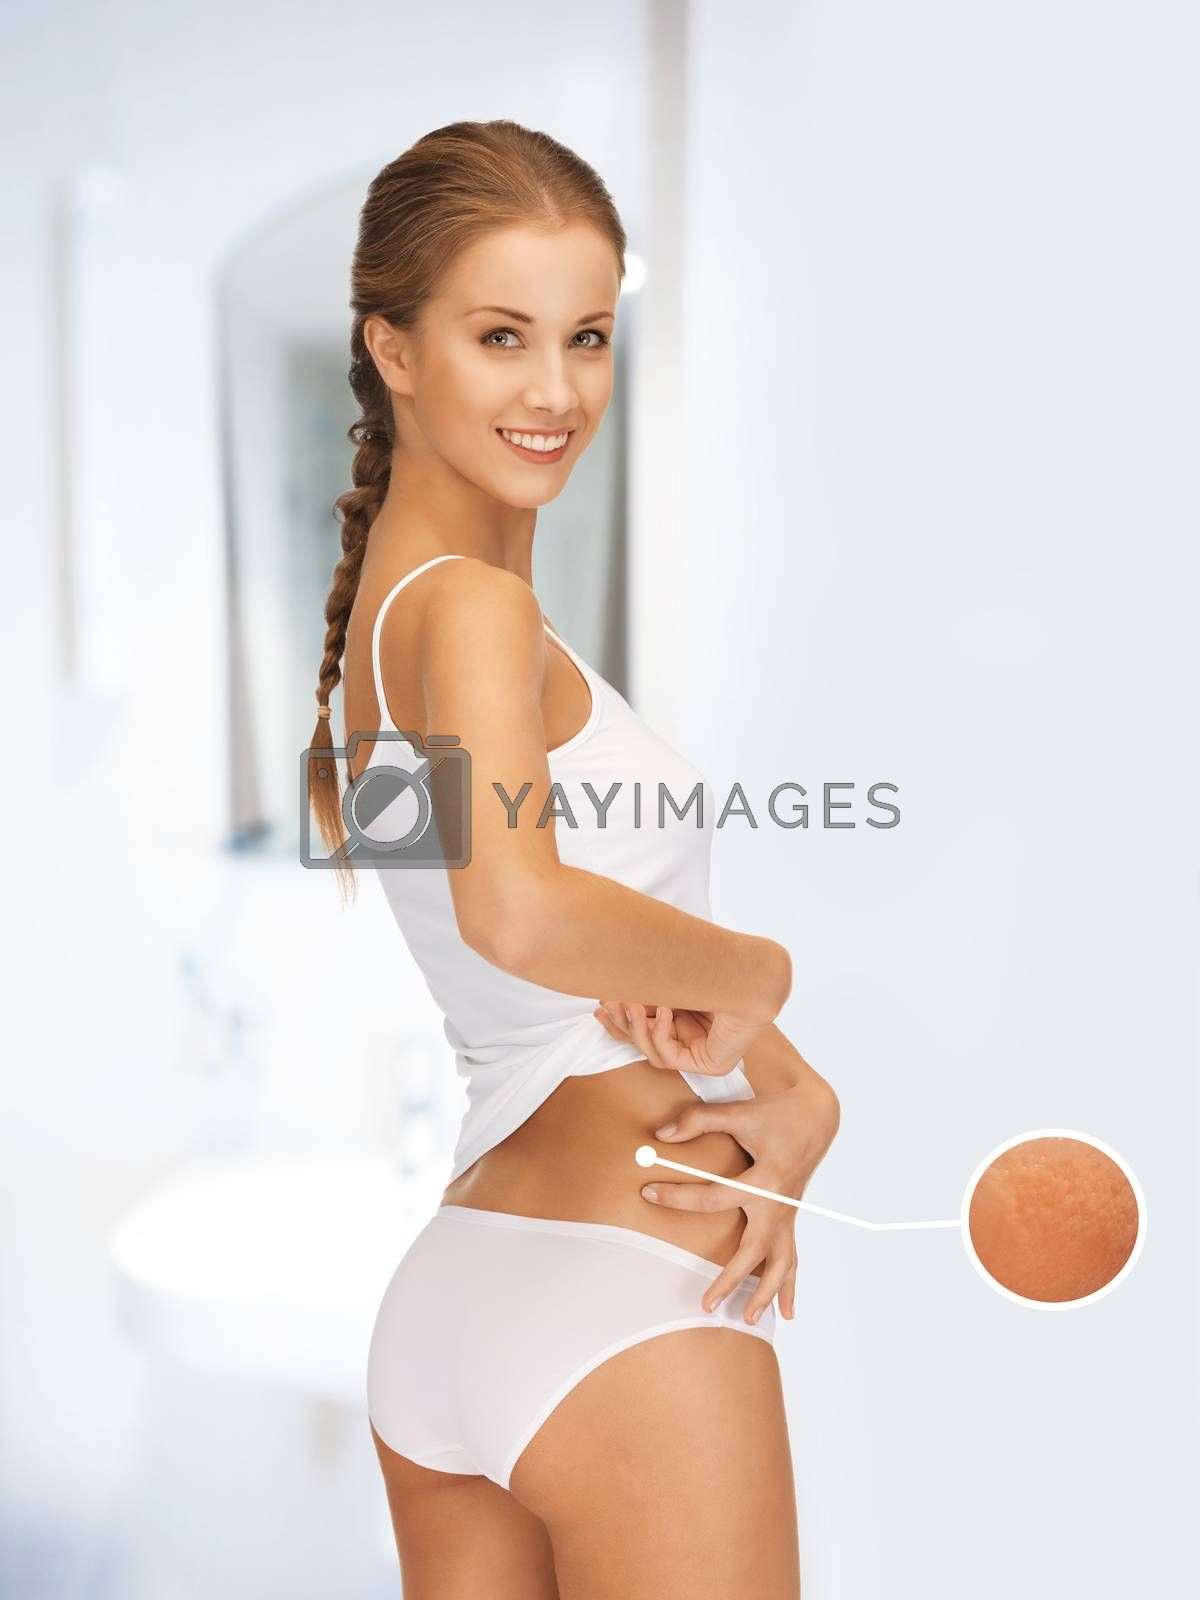 woman with magnifier showing cellulite by dolgachov